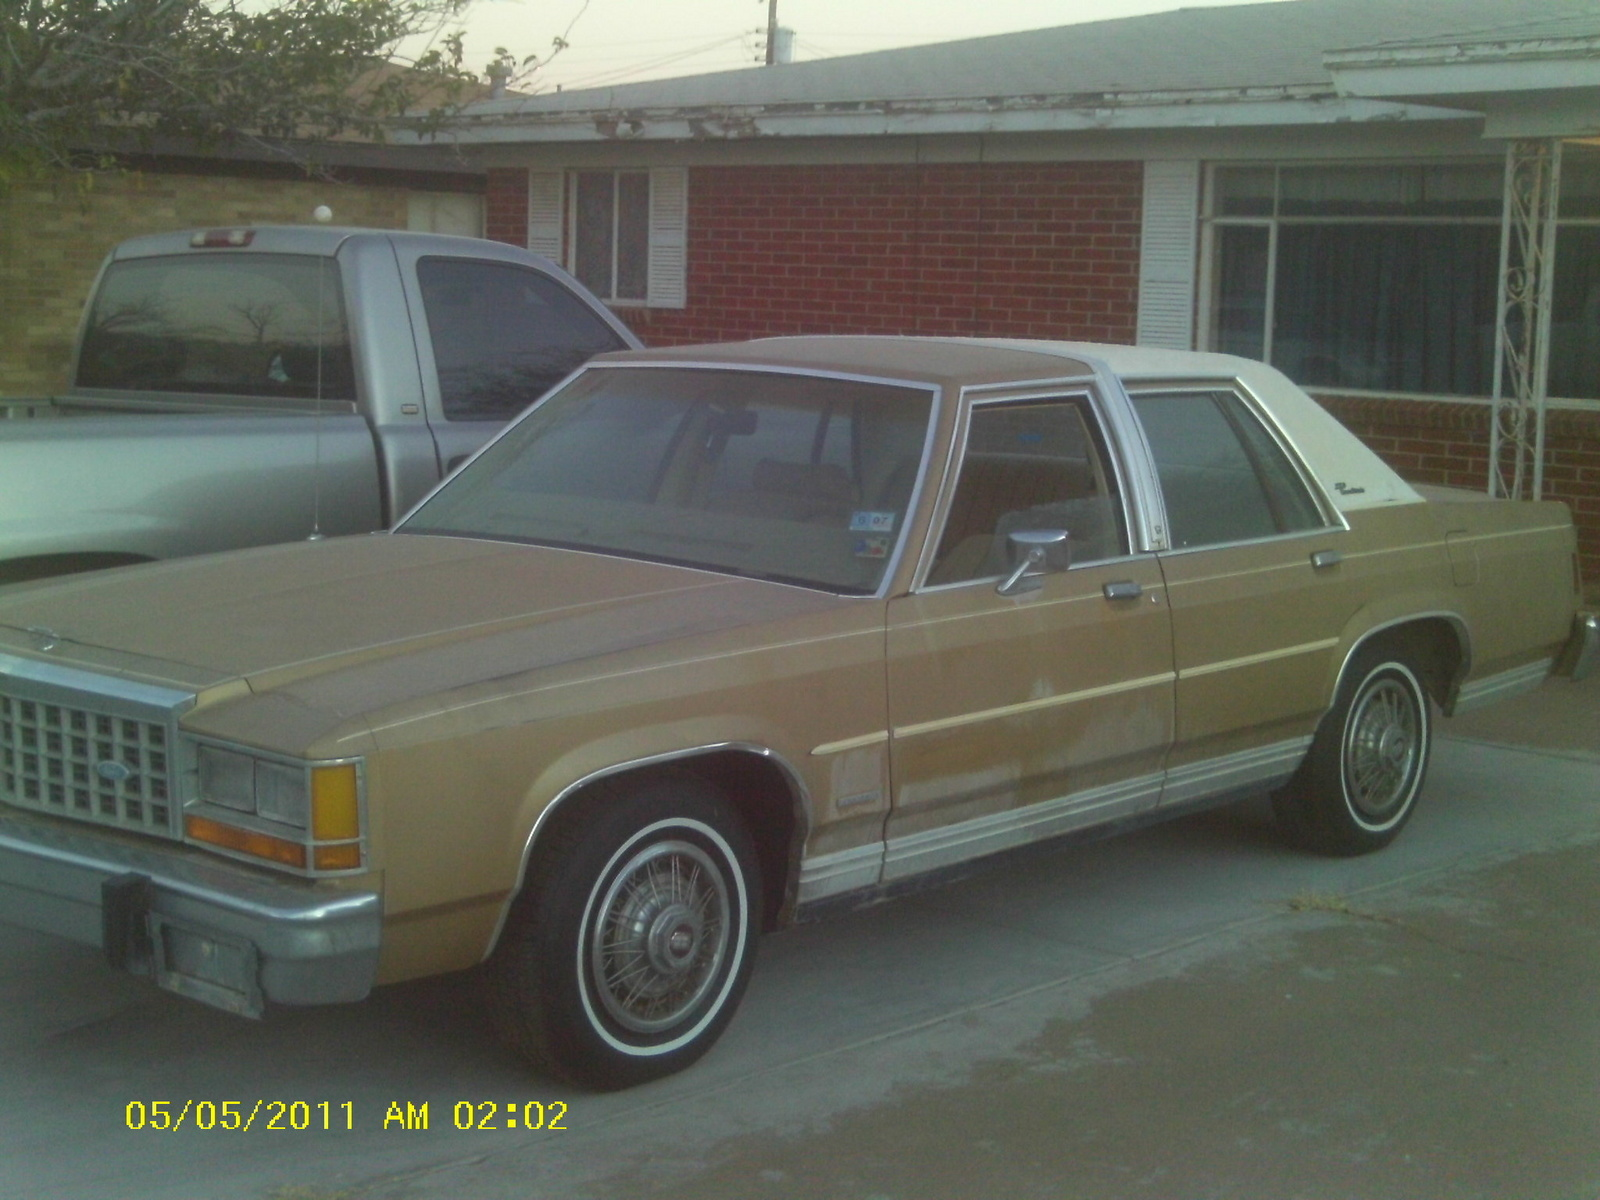 Ford LTD Crown Victoria Questions - Does my car have a carburetor or not? -  CarGurus